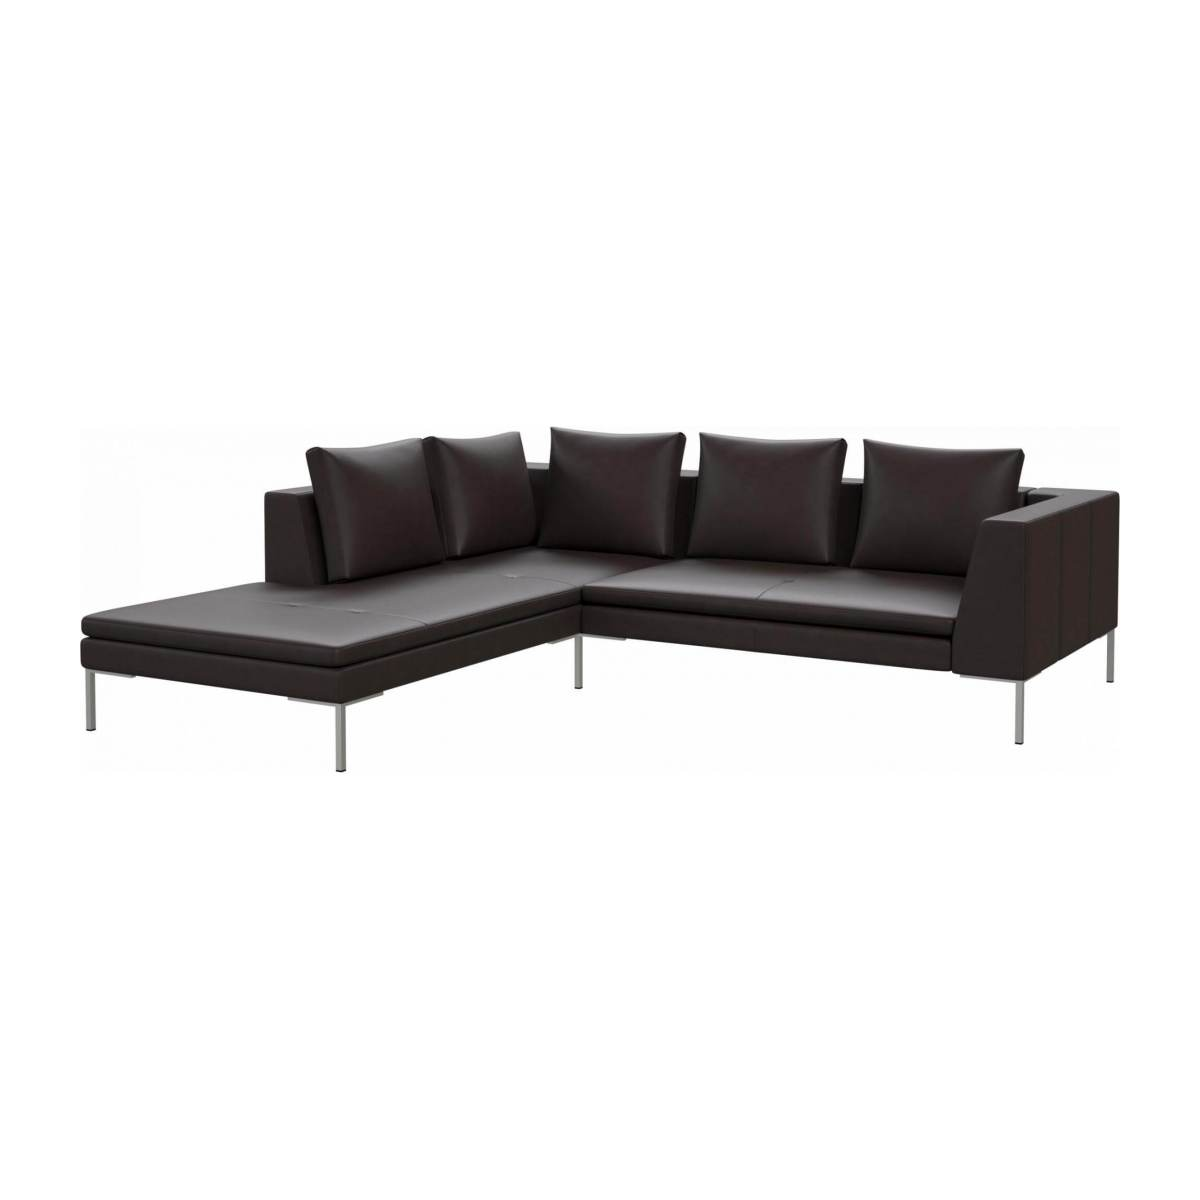 2 seater sofa with chaise longue on the left in Savoy semi-aniline leather, dark brown amaretto  n°2